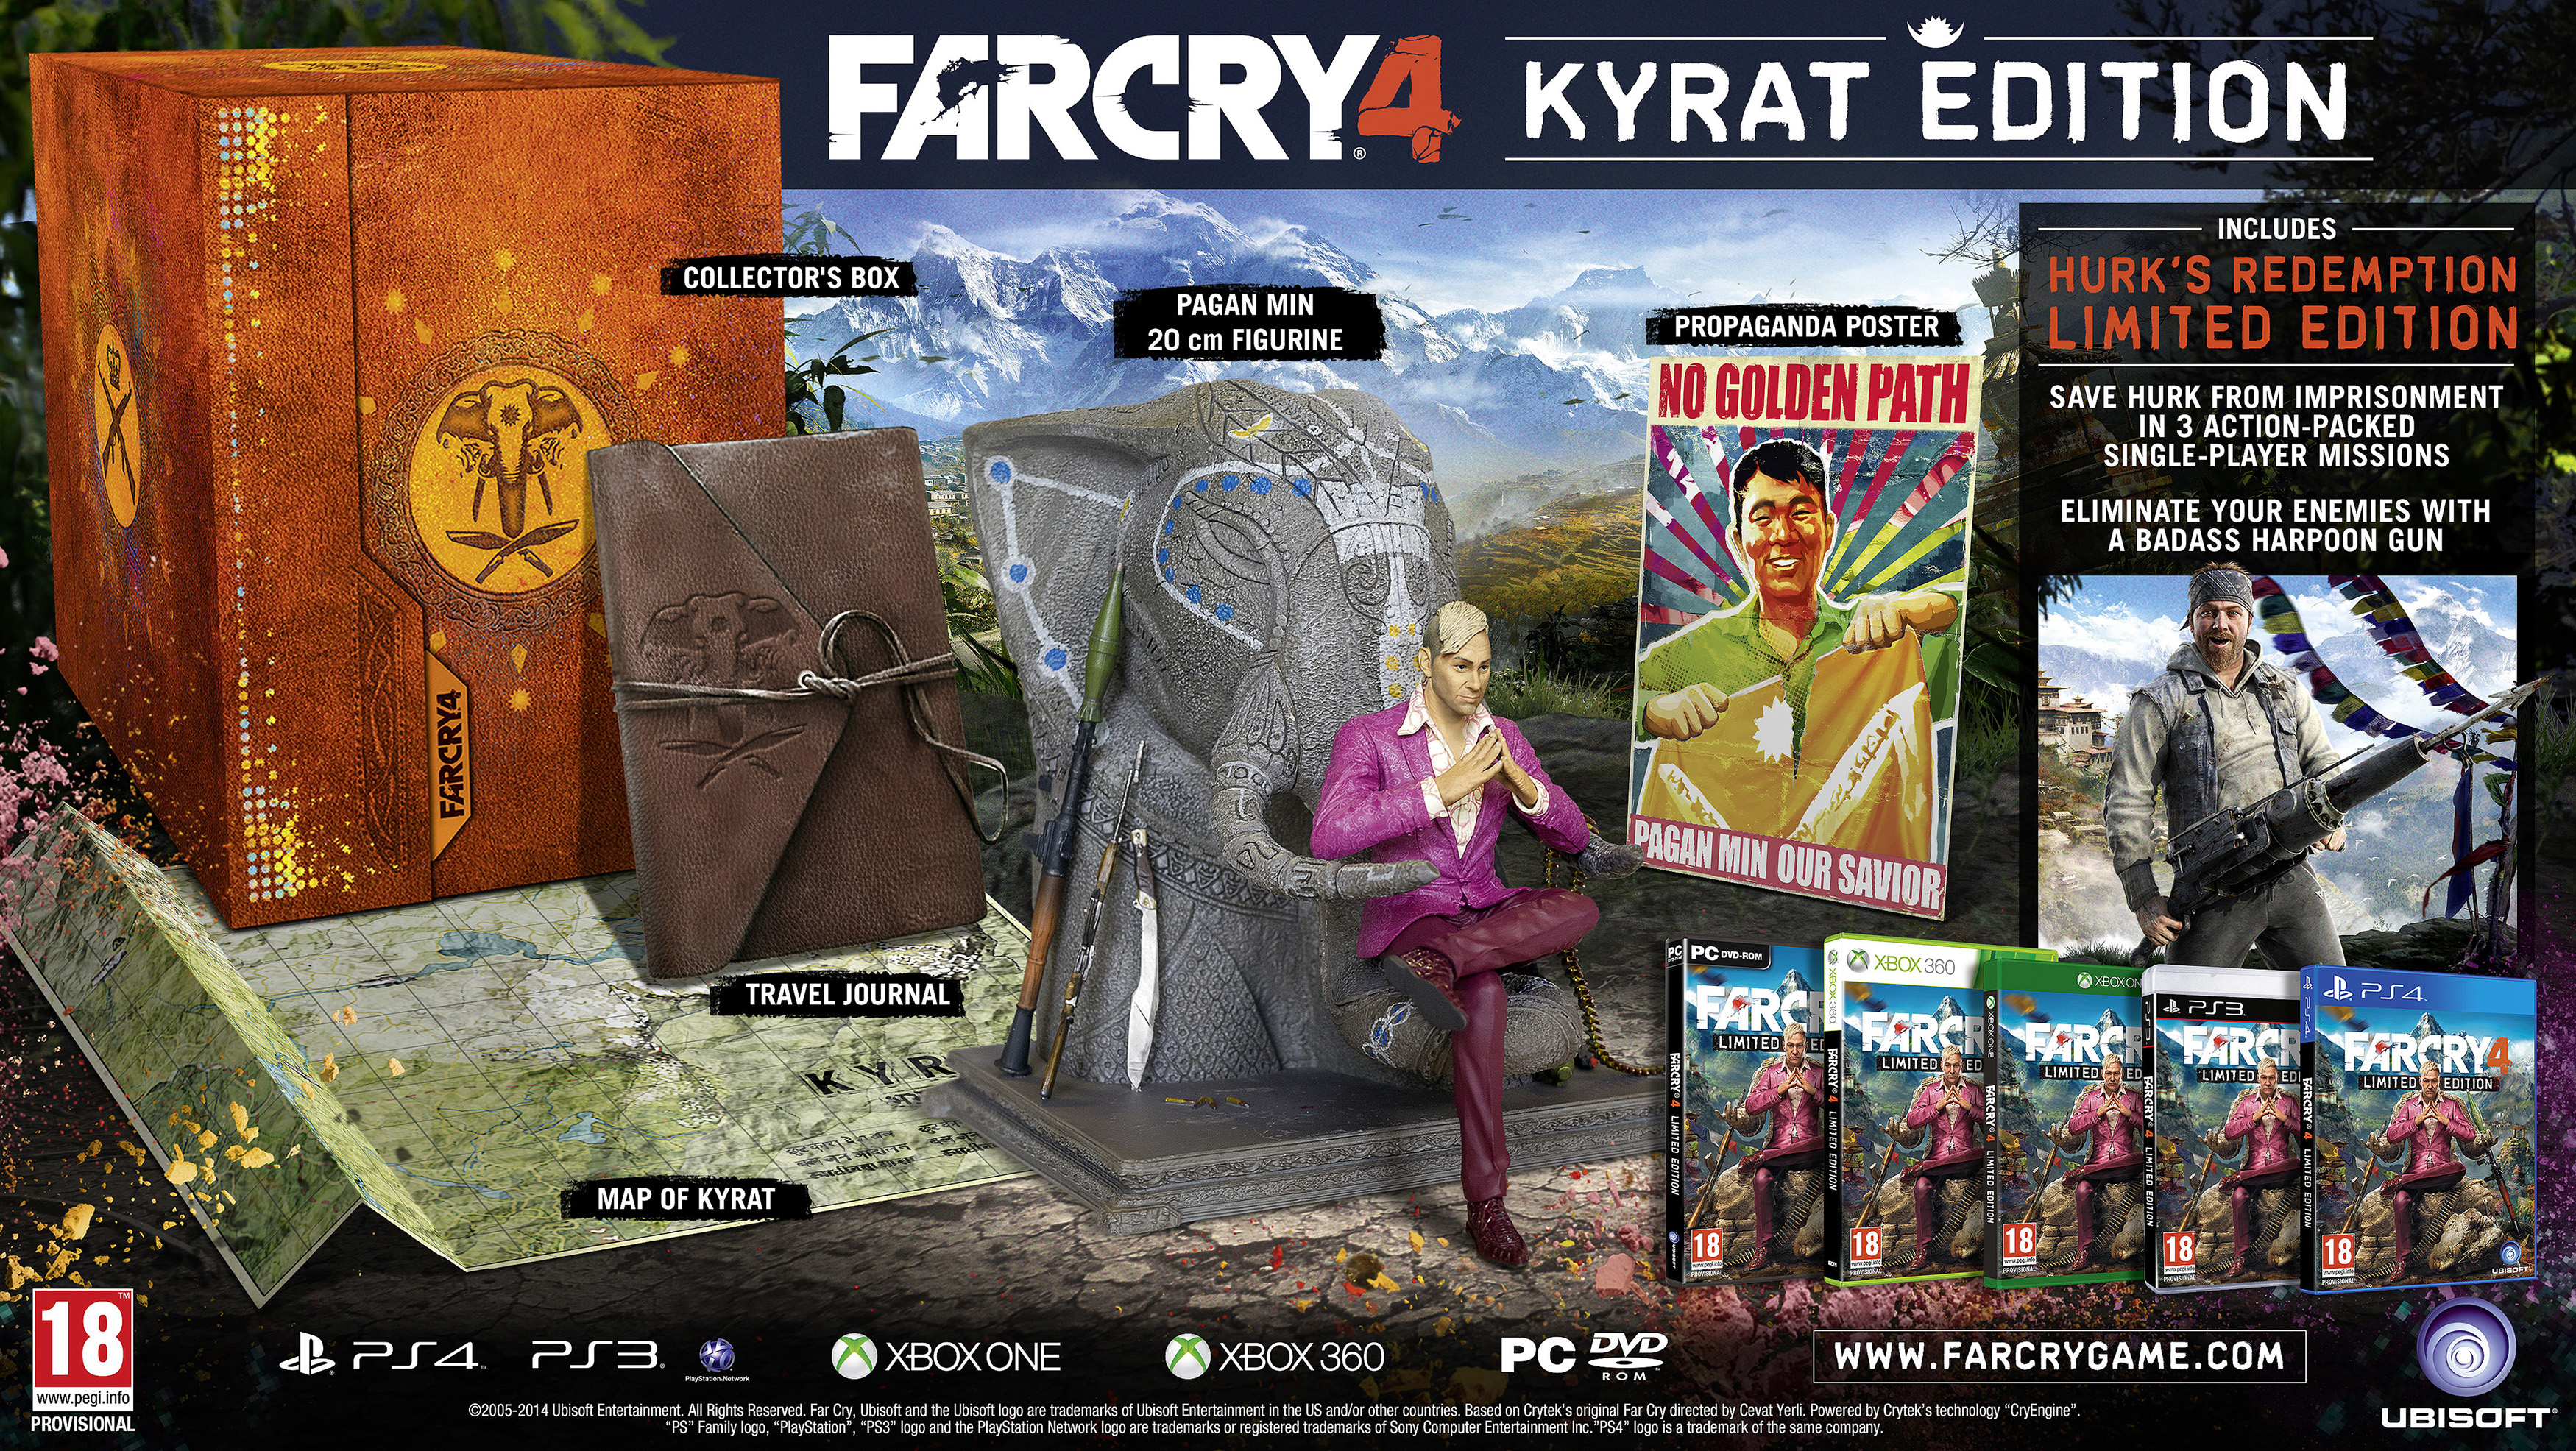 fc4-mock-collector-kyrat-edition-e3-uk